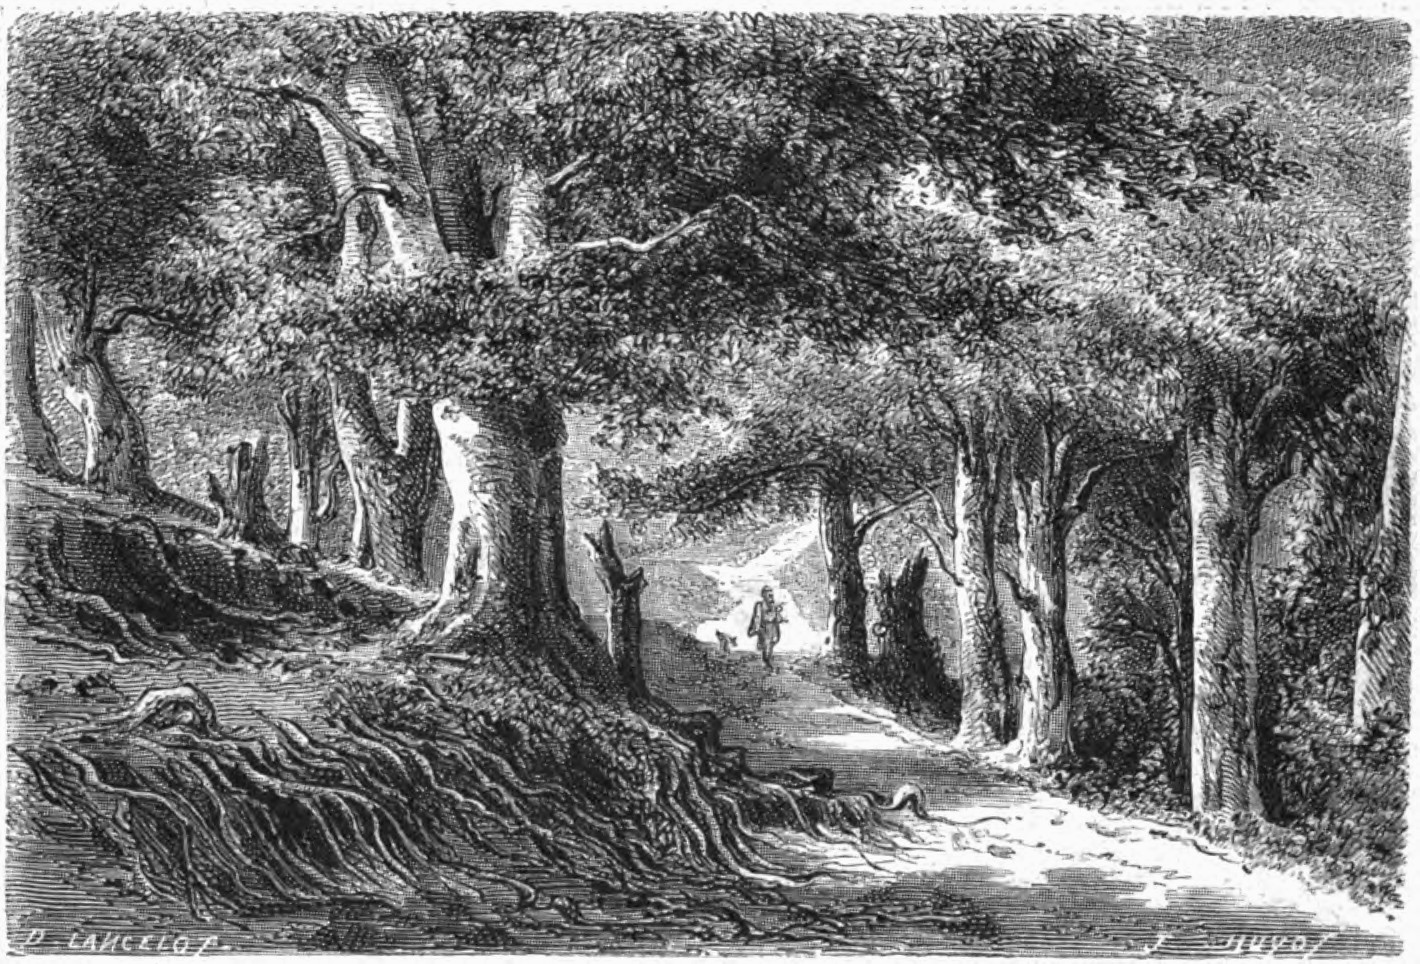 File lancelot for t baia de wikimedia commons - Dessin de foret ...